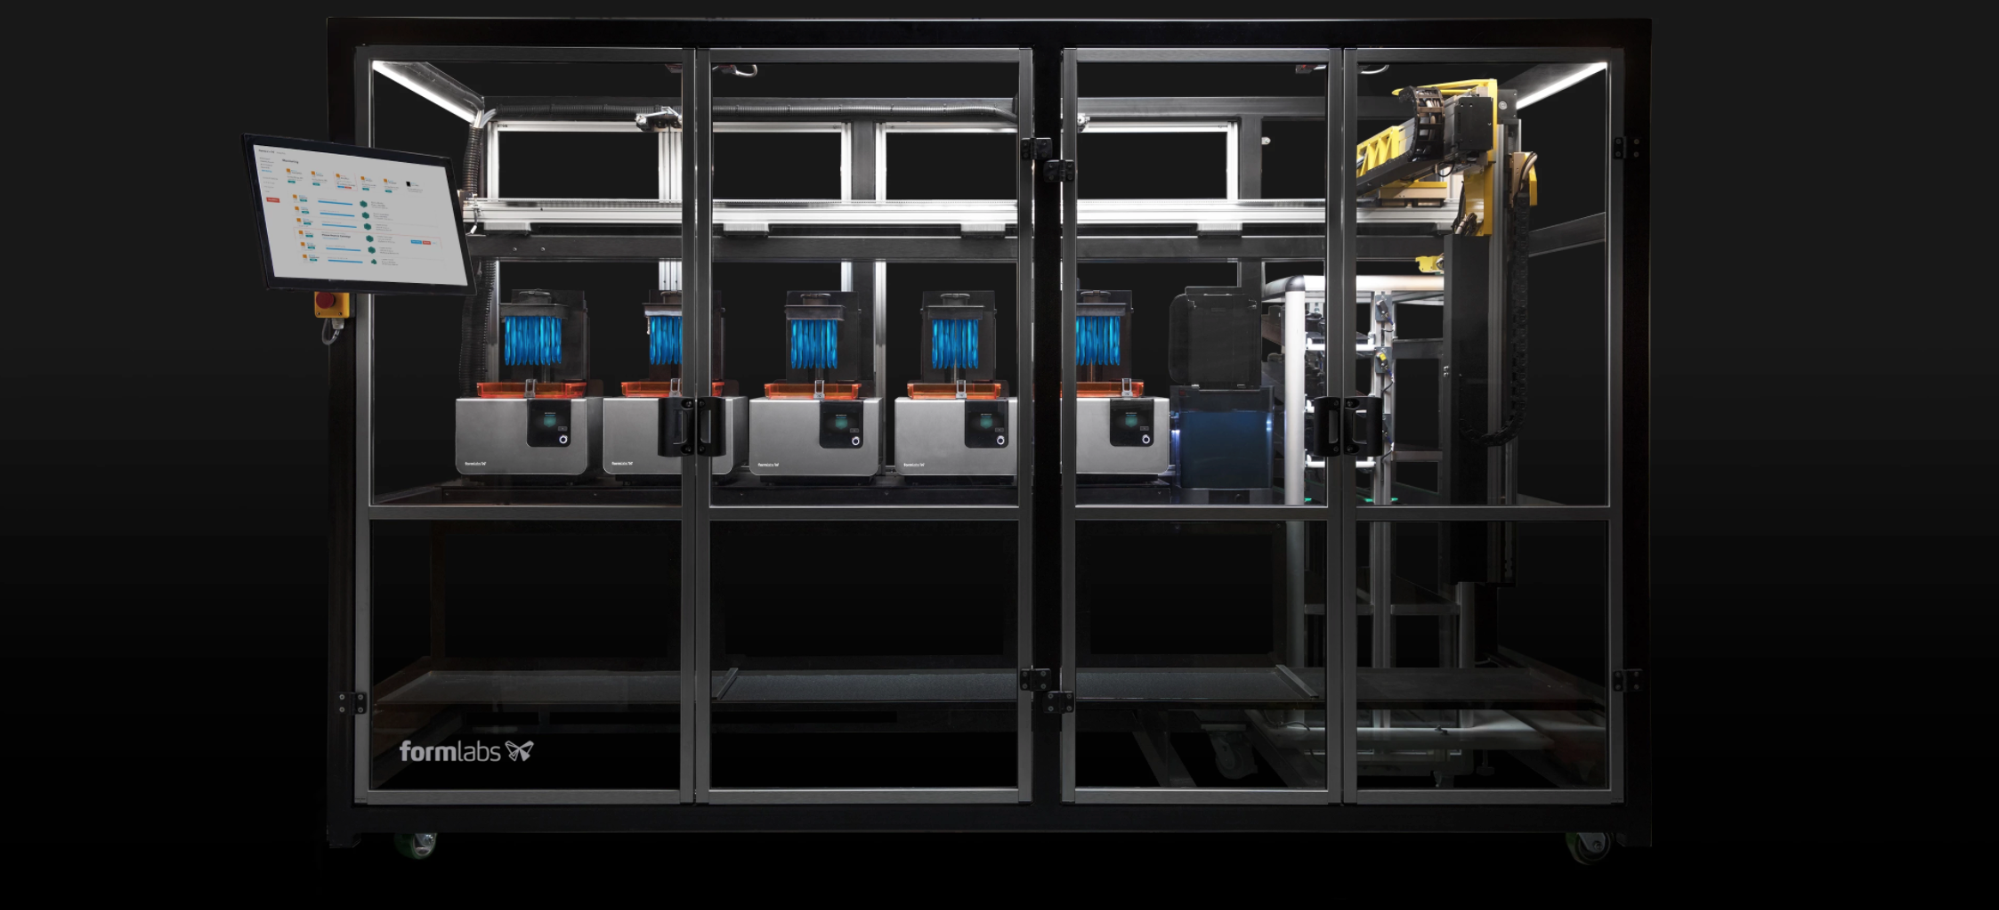 Formlabs Form Cell, an automated production system powered by Form 2 stereolithography 3D printers.